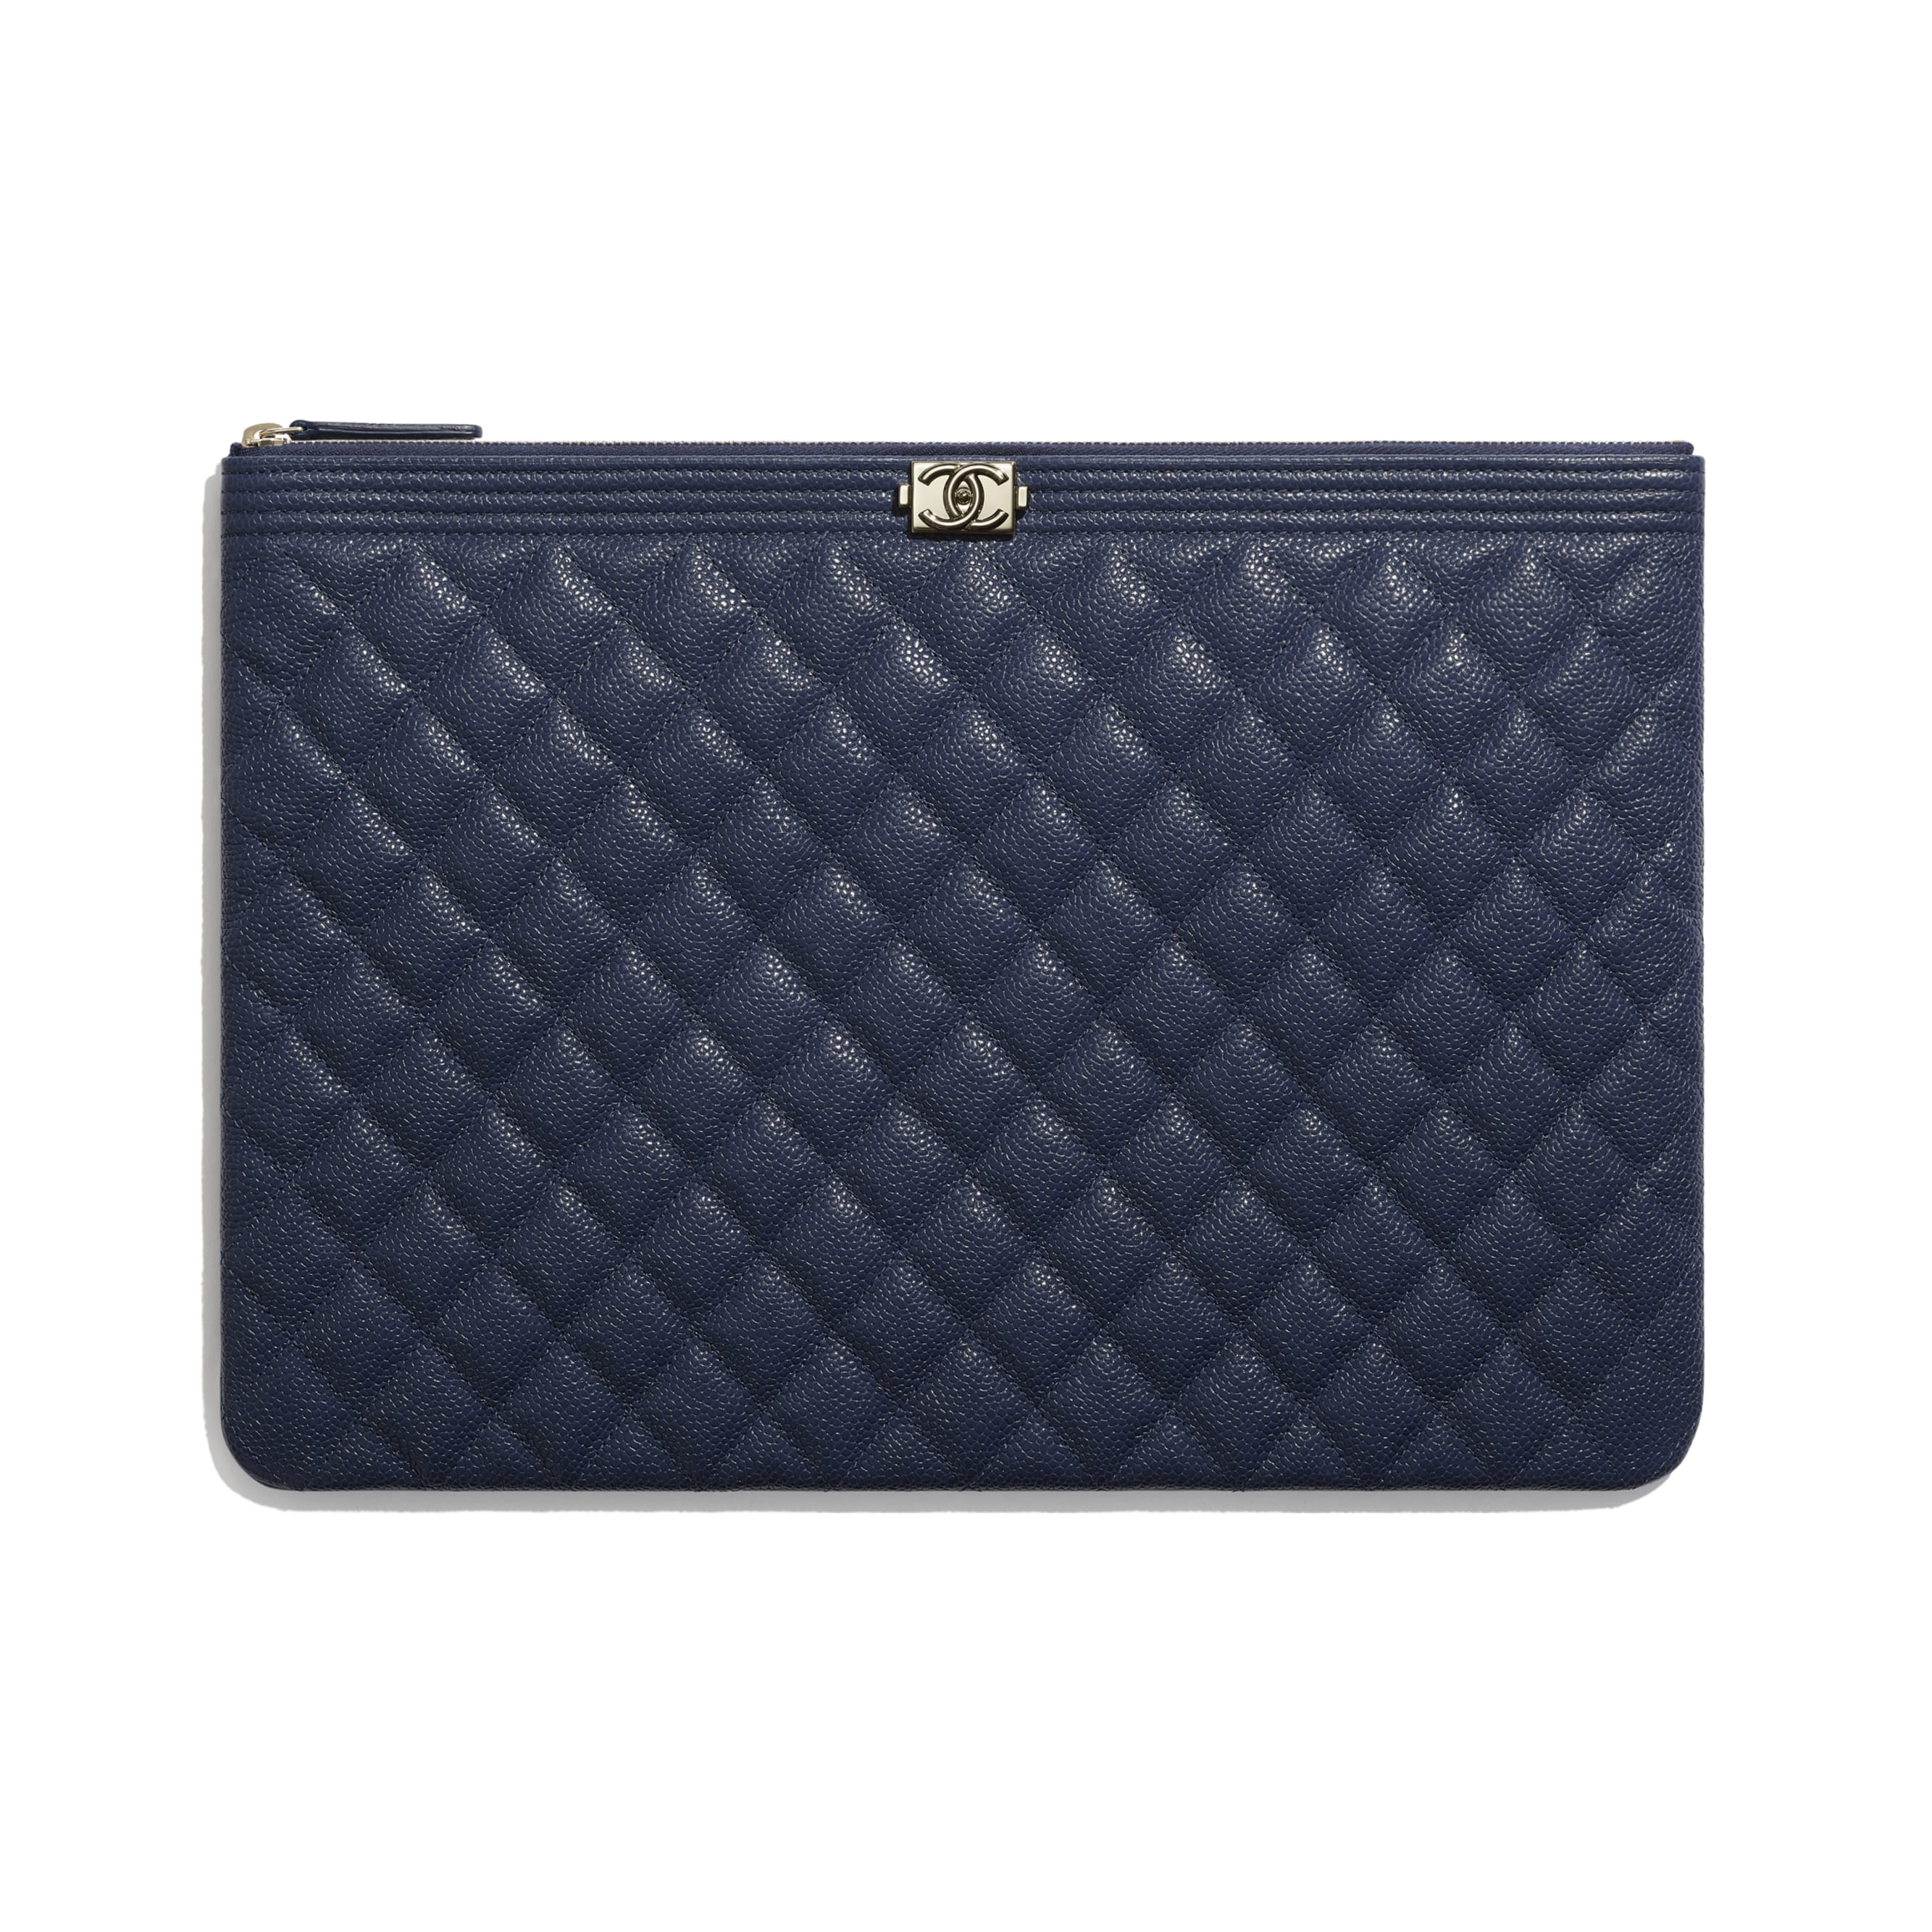 BOY CHANEL Large Pouch - Navy Blue - Grained Shiny Calfskin & Gold-Tone Metal - Default view - see standard sized version